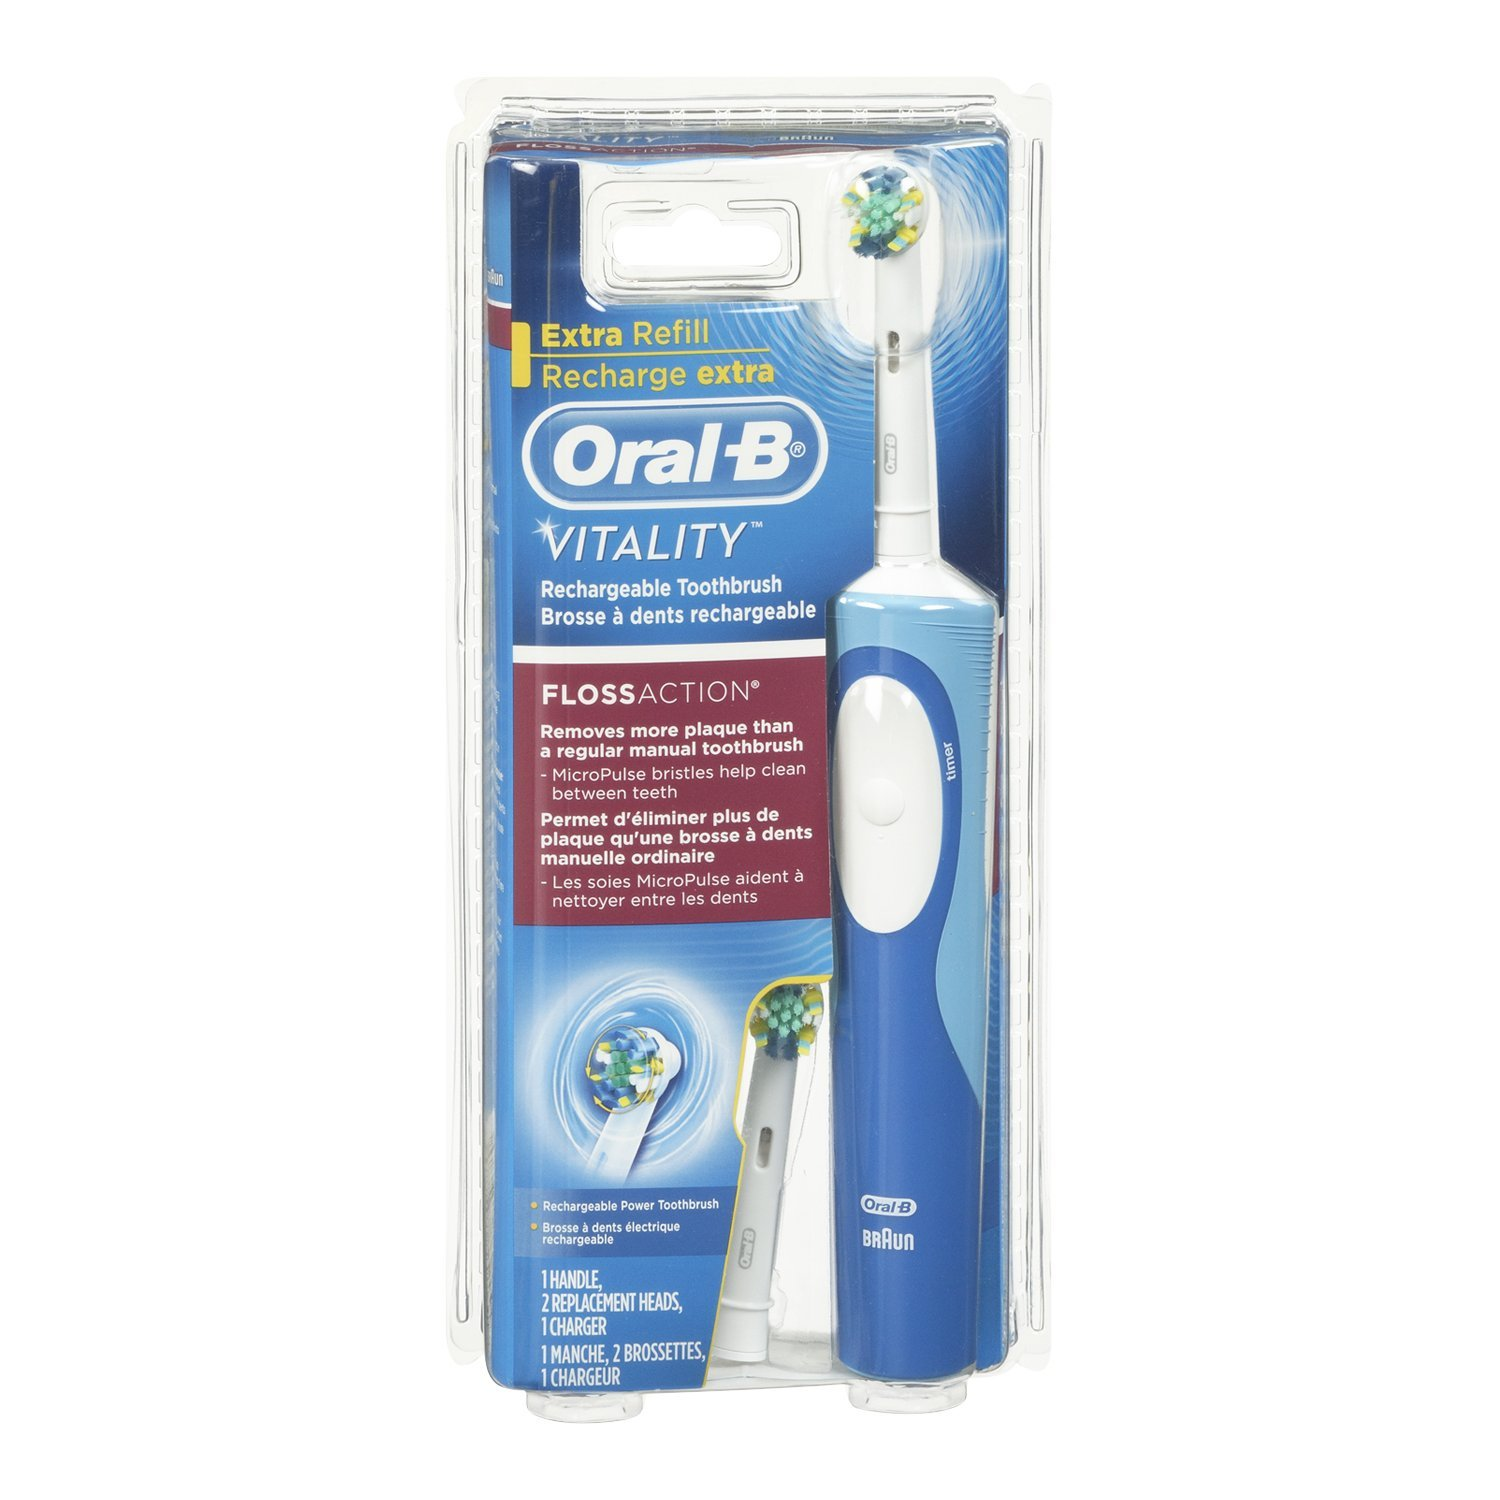 Oral b vitality electric toothbrush